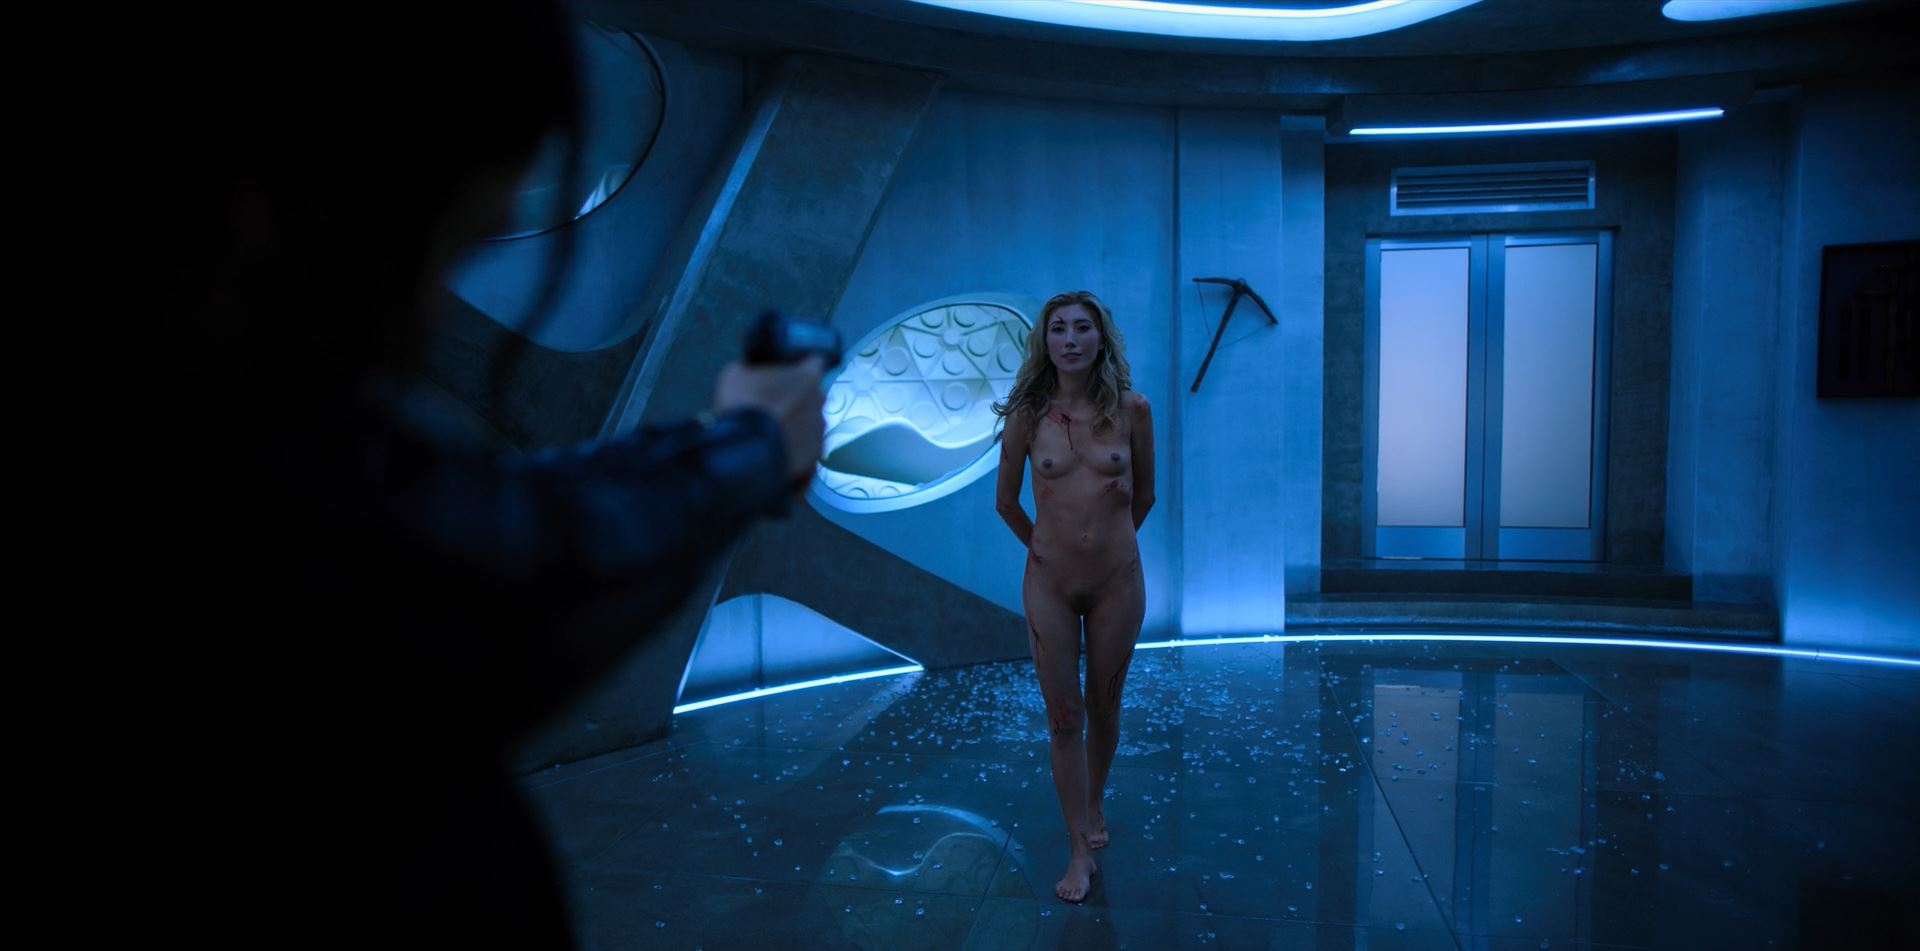 Altered Carbon - Dichen Lachman nude